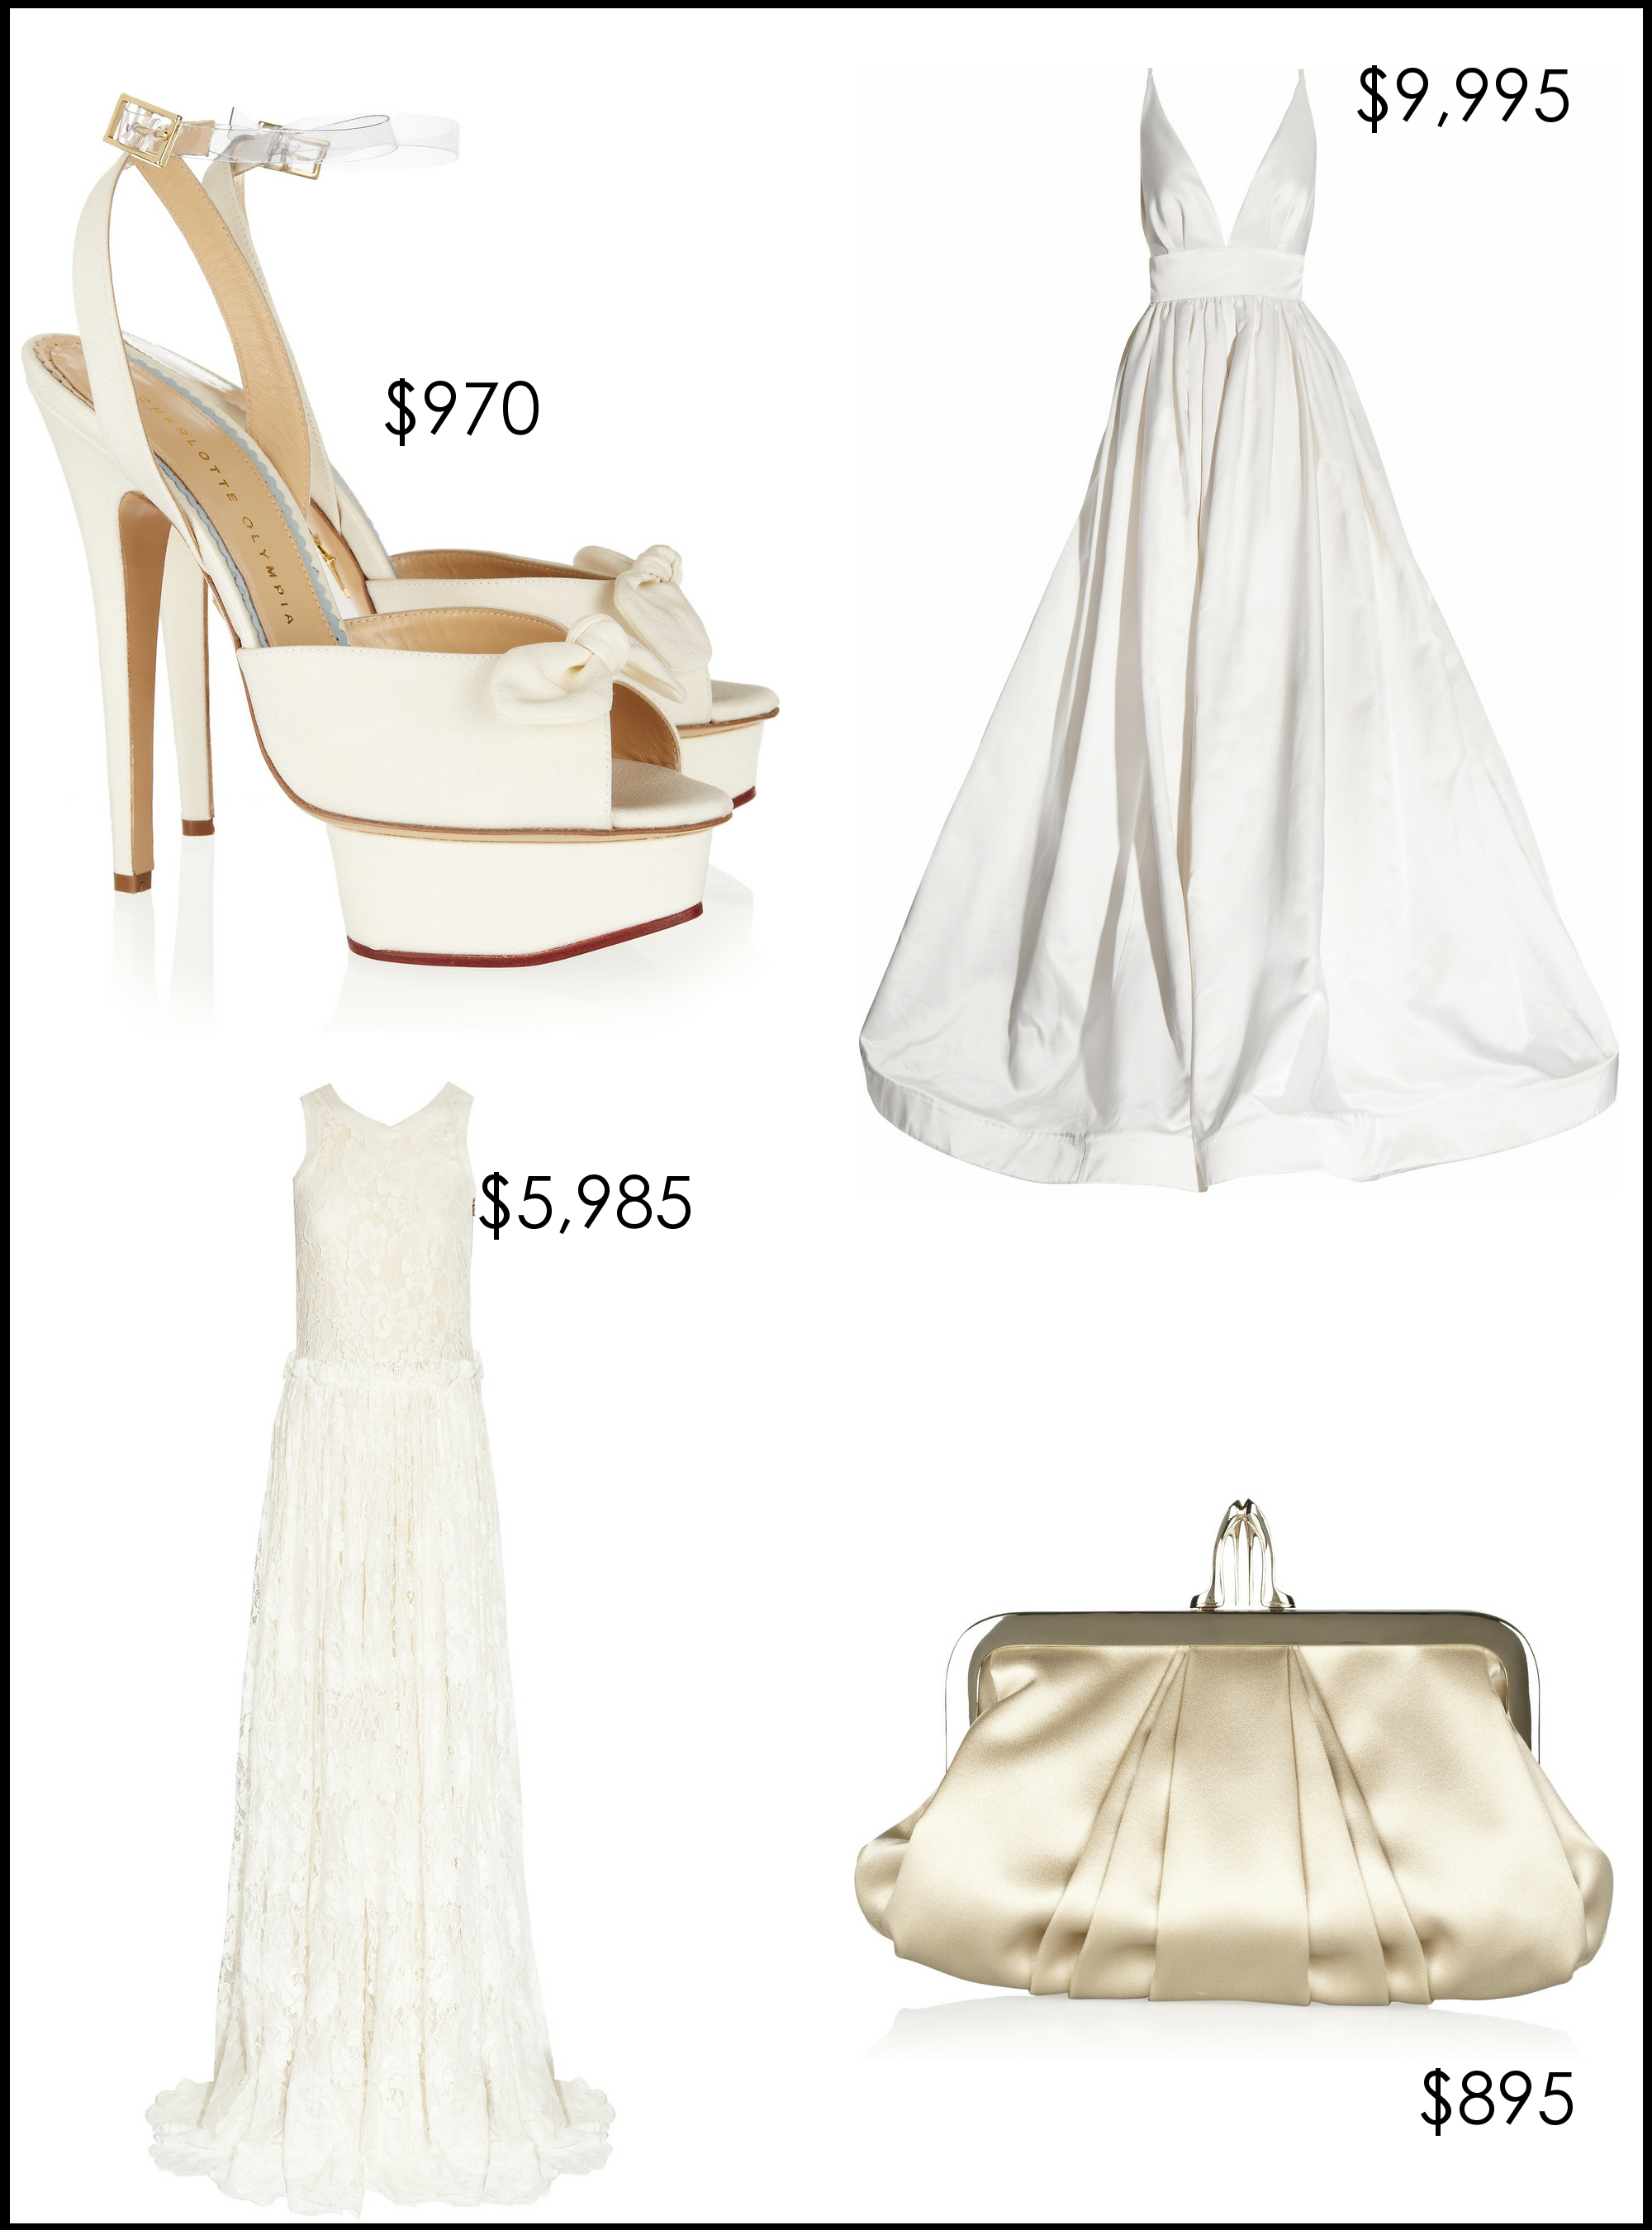 Designer-wedding-dress-bridal-heels-clutch-net-a-porter.original